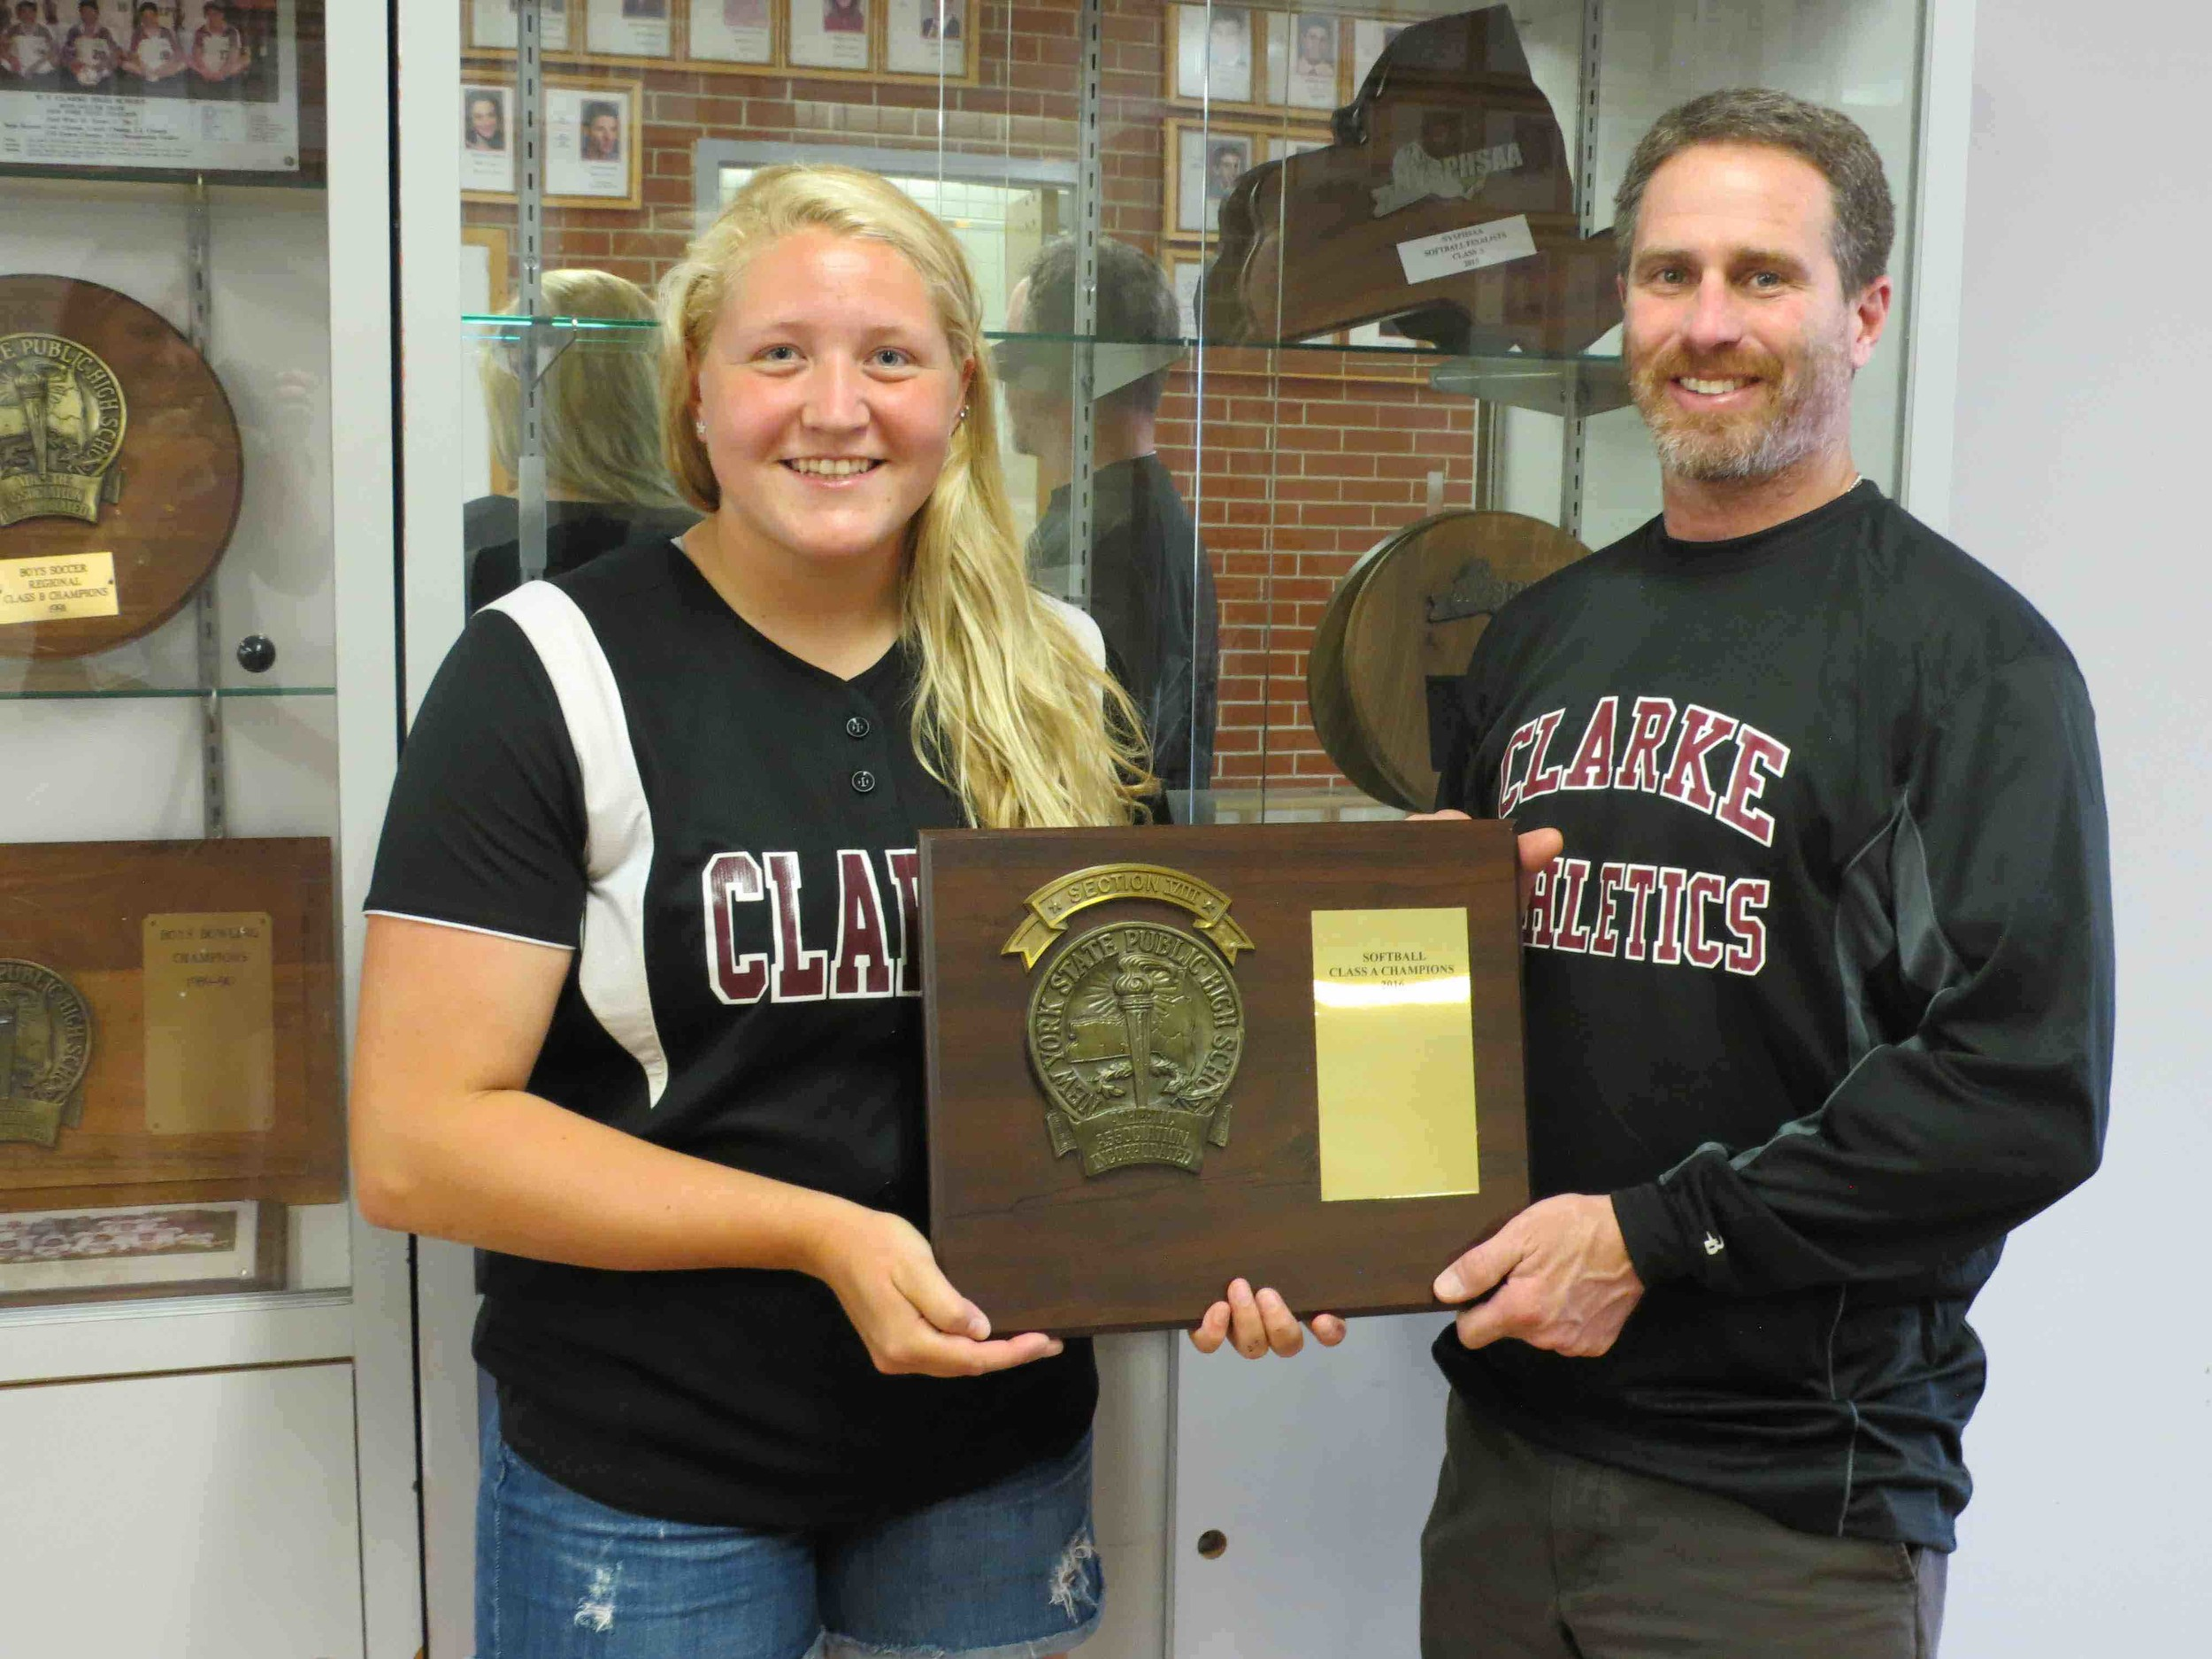 W.T. Clarke High School Athletic Director Joshua Friedman congratulated Sarah Cornell.